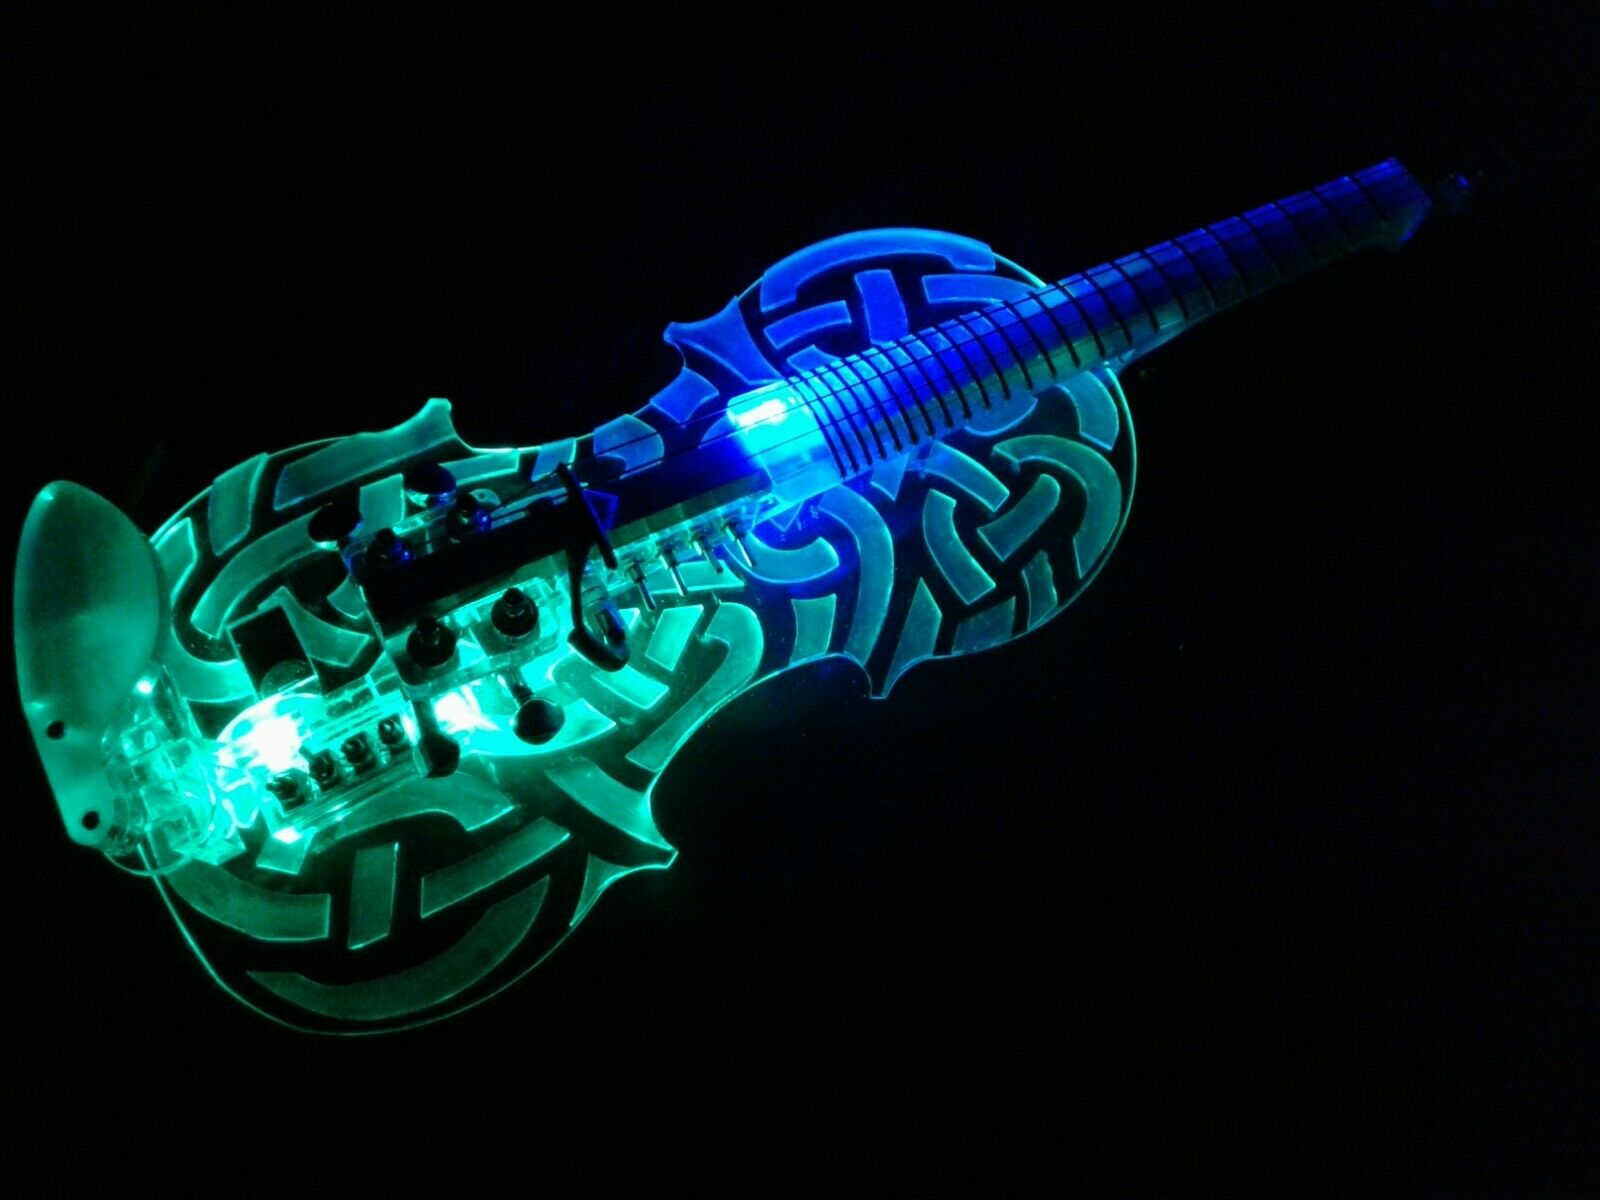 New  EQUESTER Sigma celtic knot fretted acrylic electric violin, HANDMADE